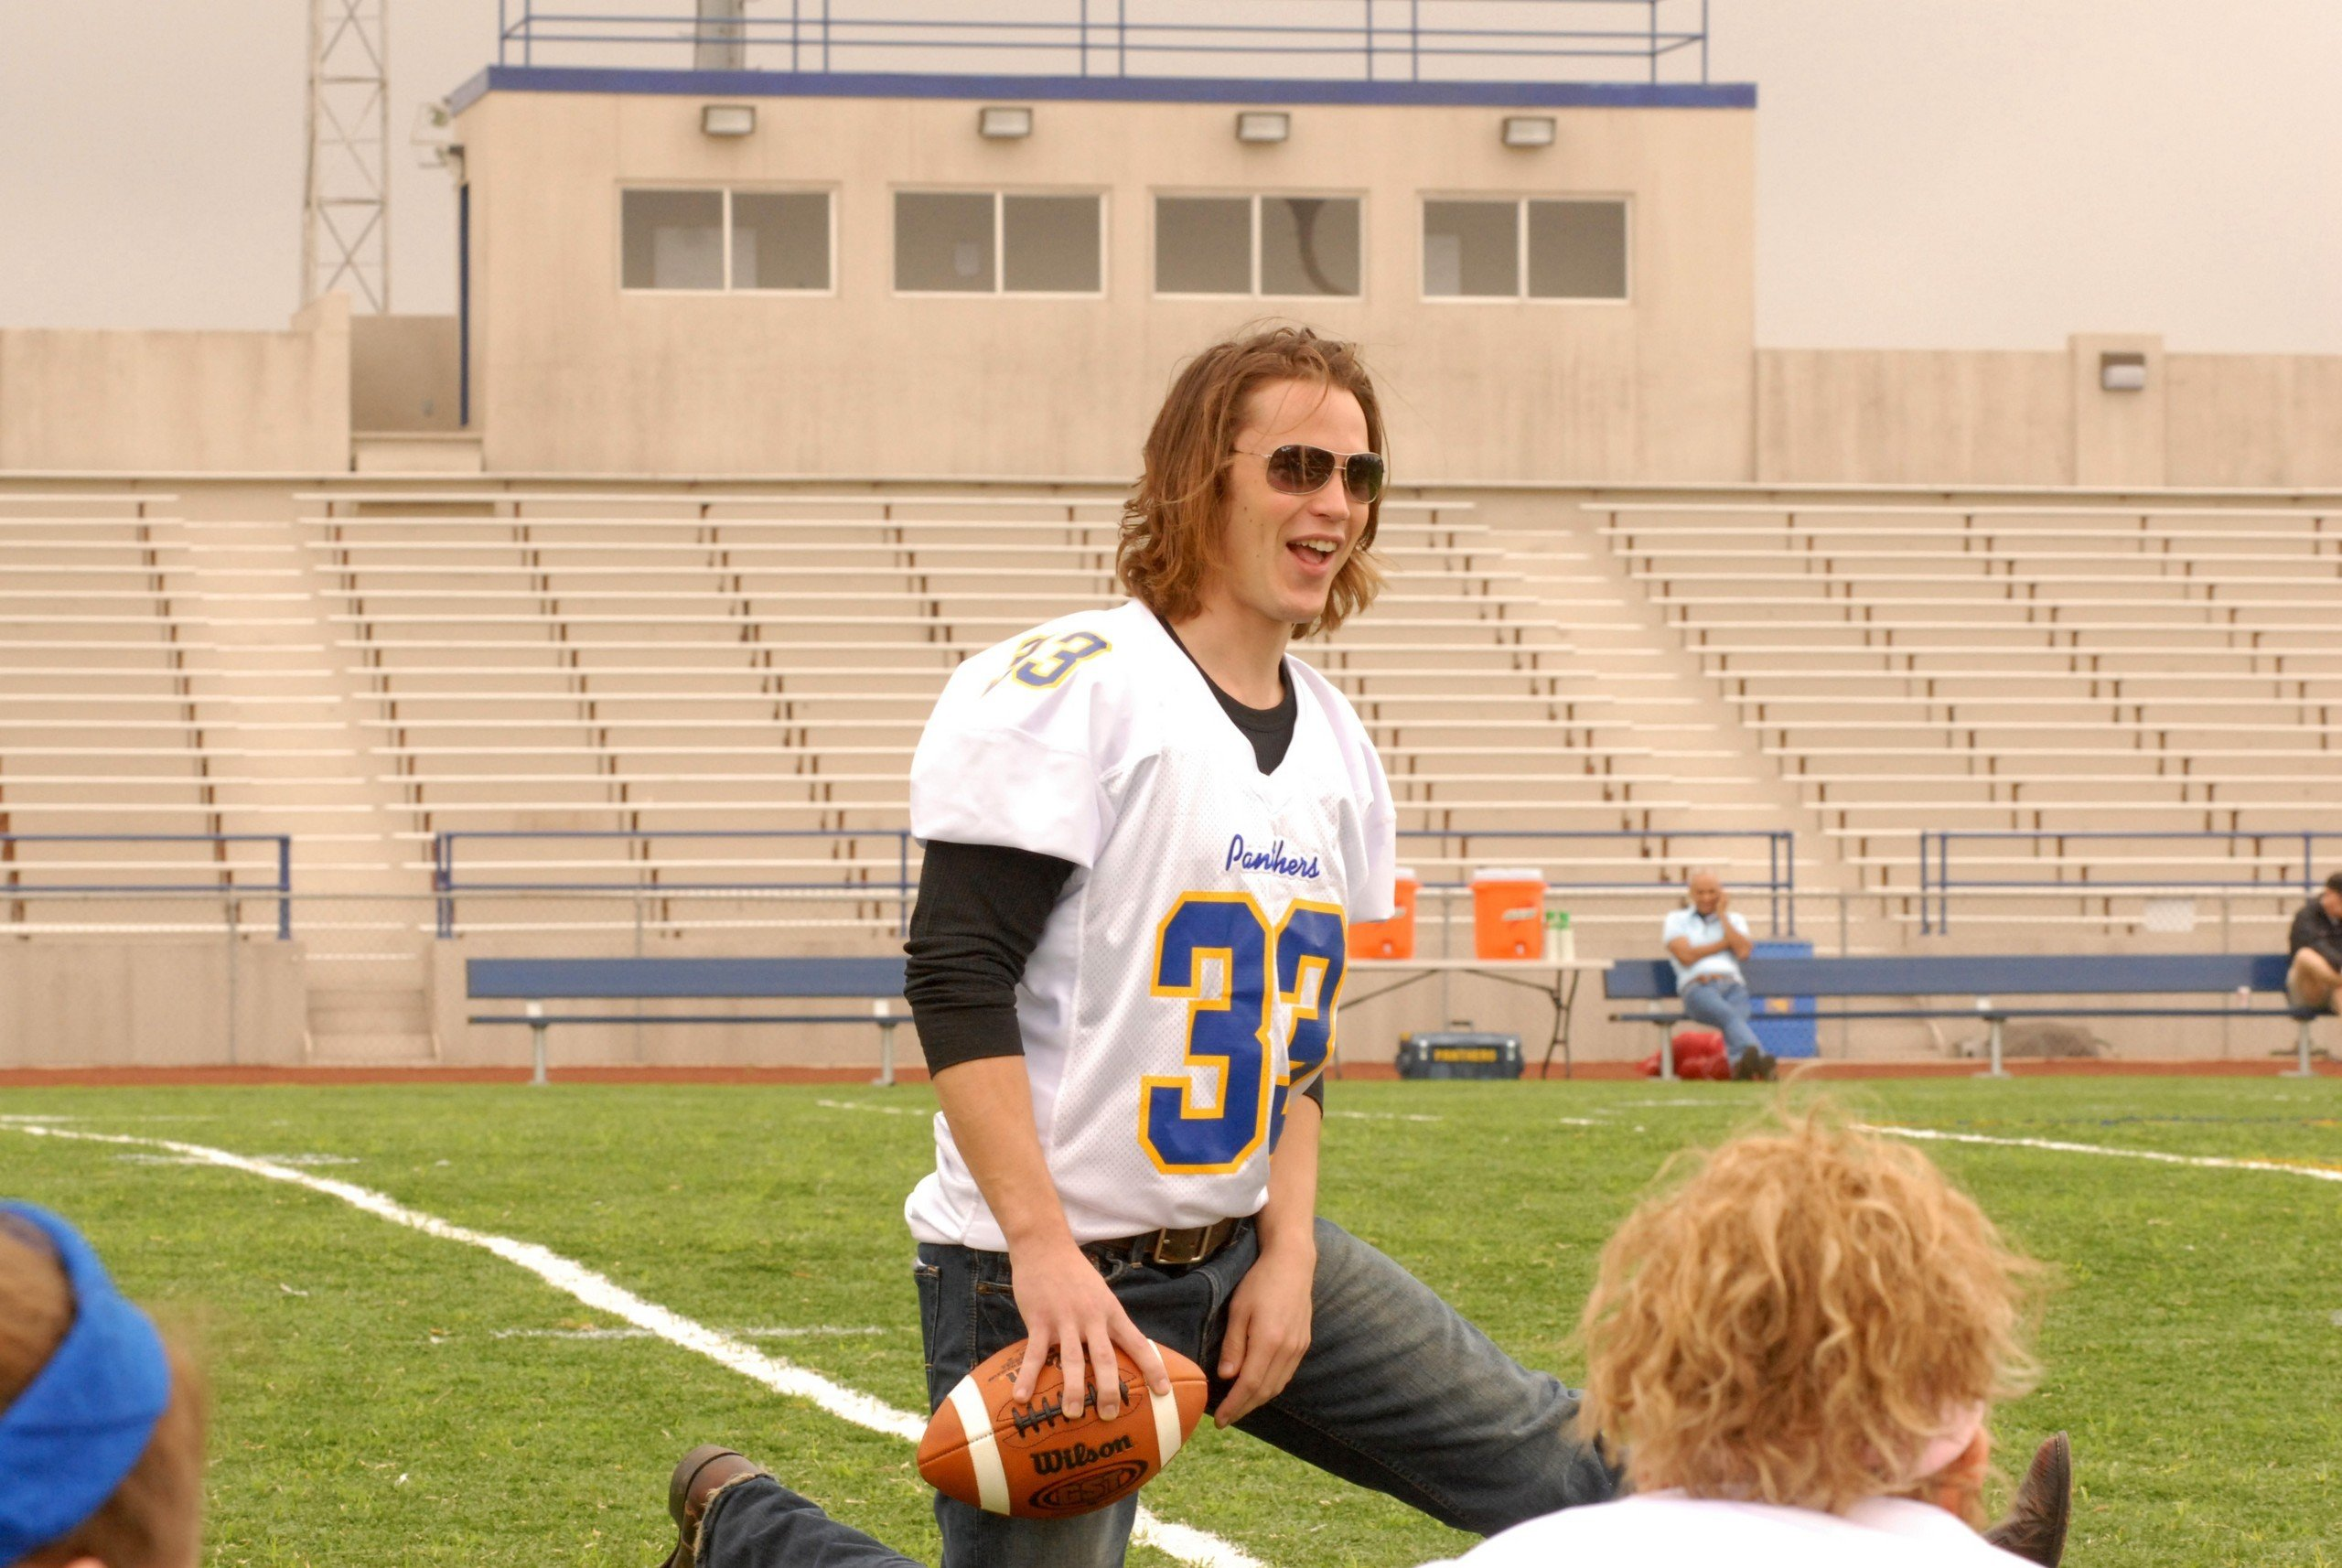 Top 12 episodes of 'Friday Night Lights' to watch before it leaves Netflix